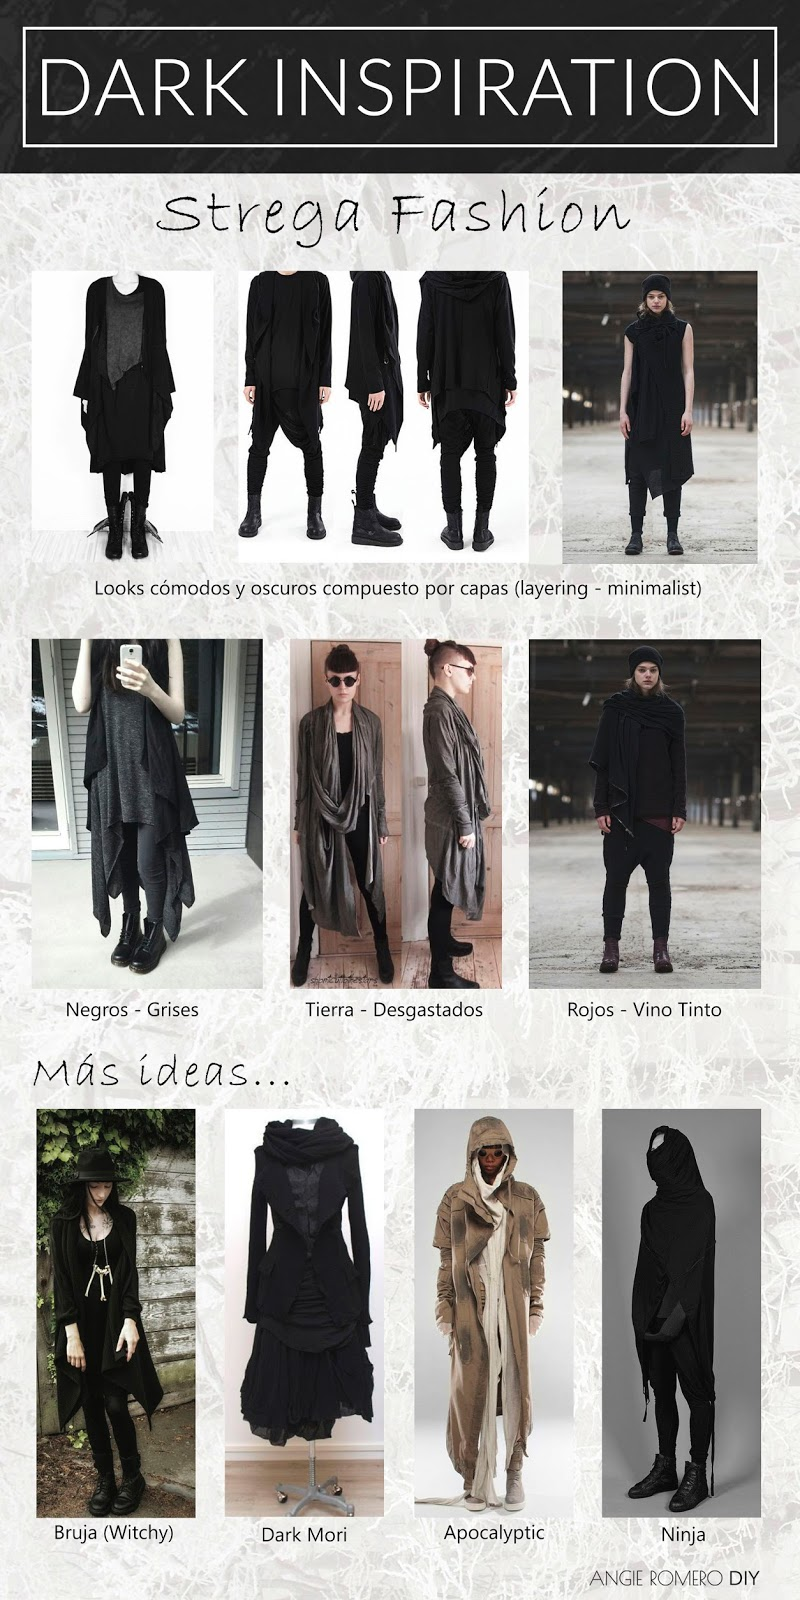 Dark inspiration - strega fashion, estilo alternativo.